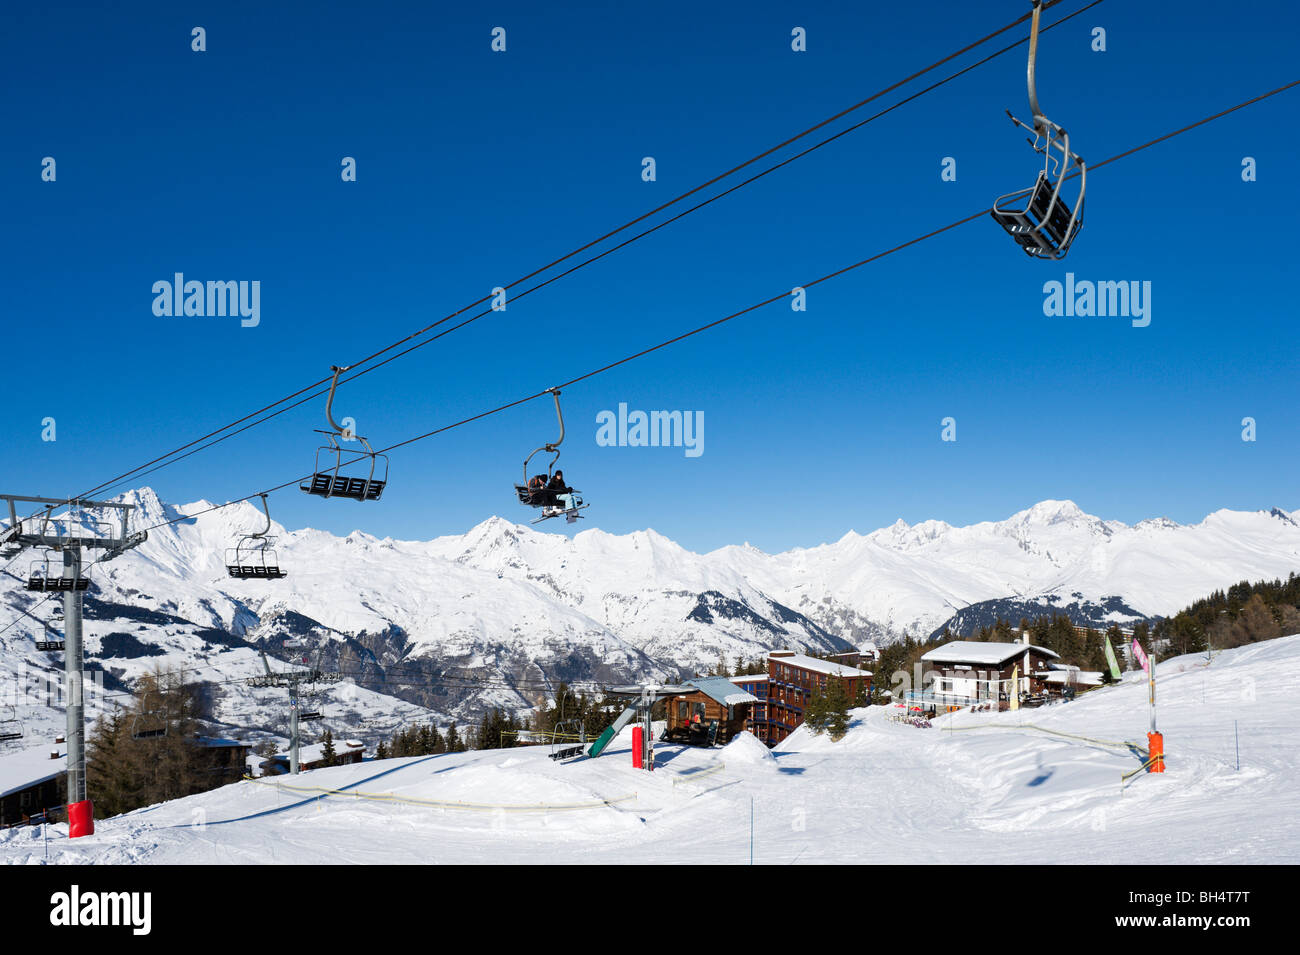 The Charmettoger chair lift near to the resort centre, Arc 1800, Les Arcs,,Tarentaise, Savoie, France - Stock Image